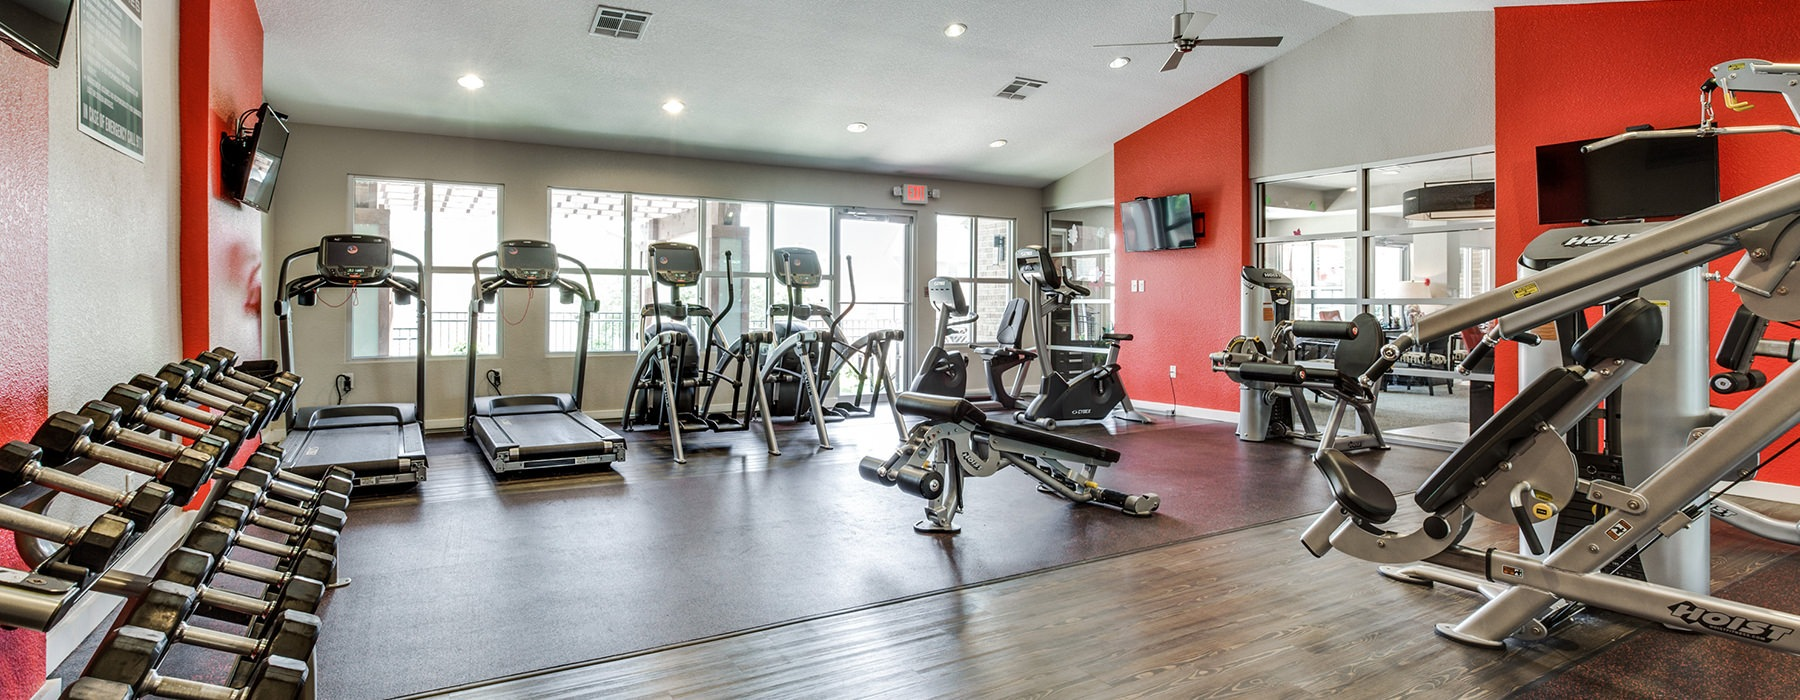 Ample treadmills and well-equipped fitness center